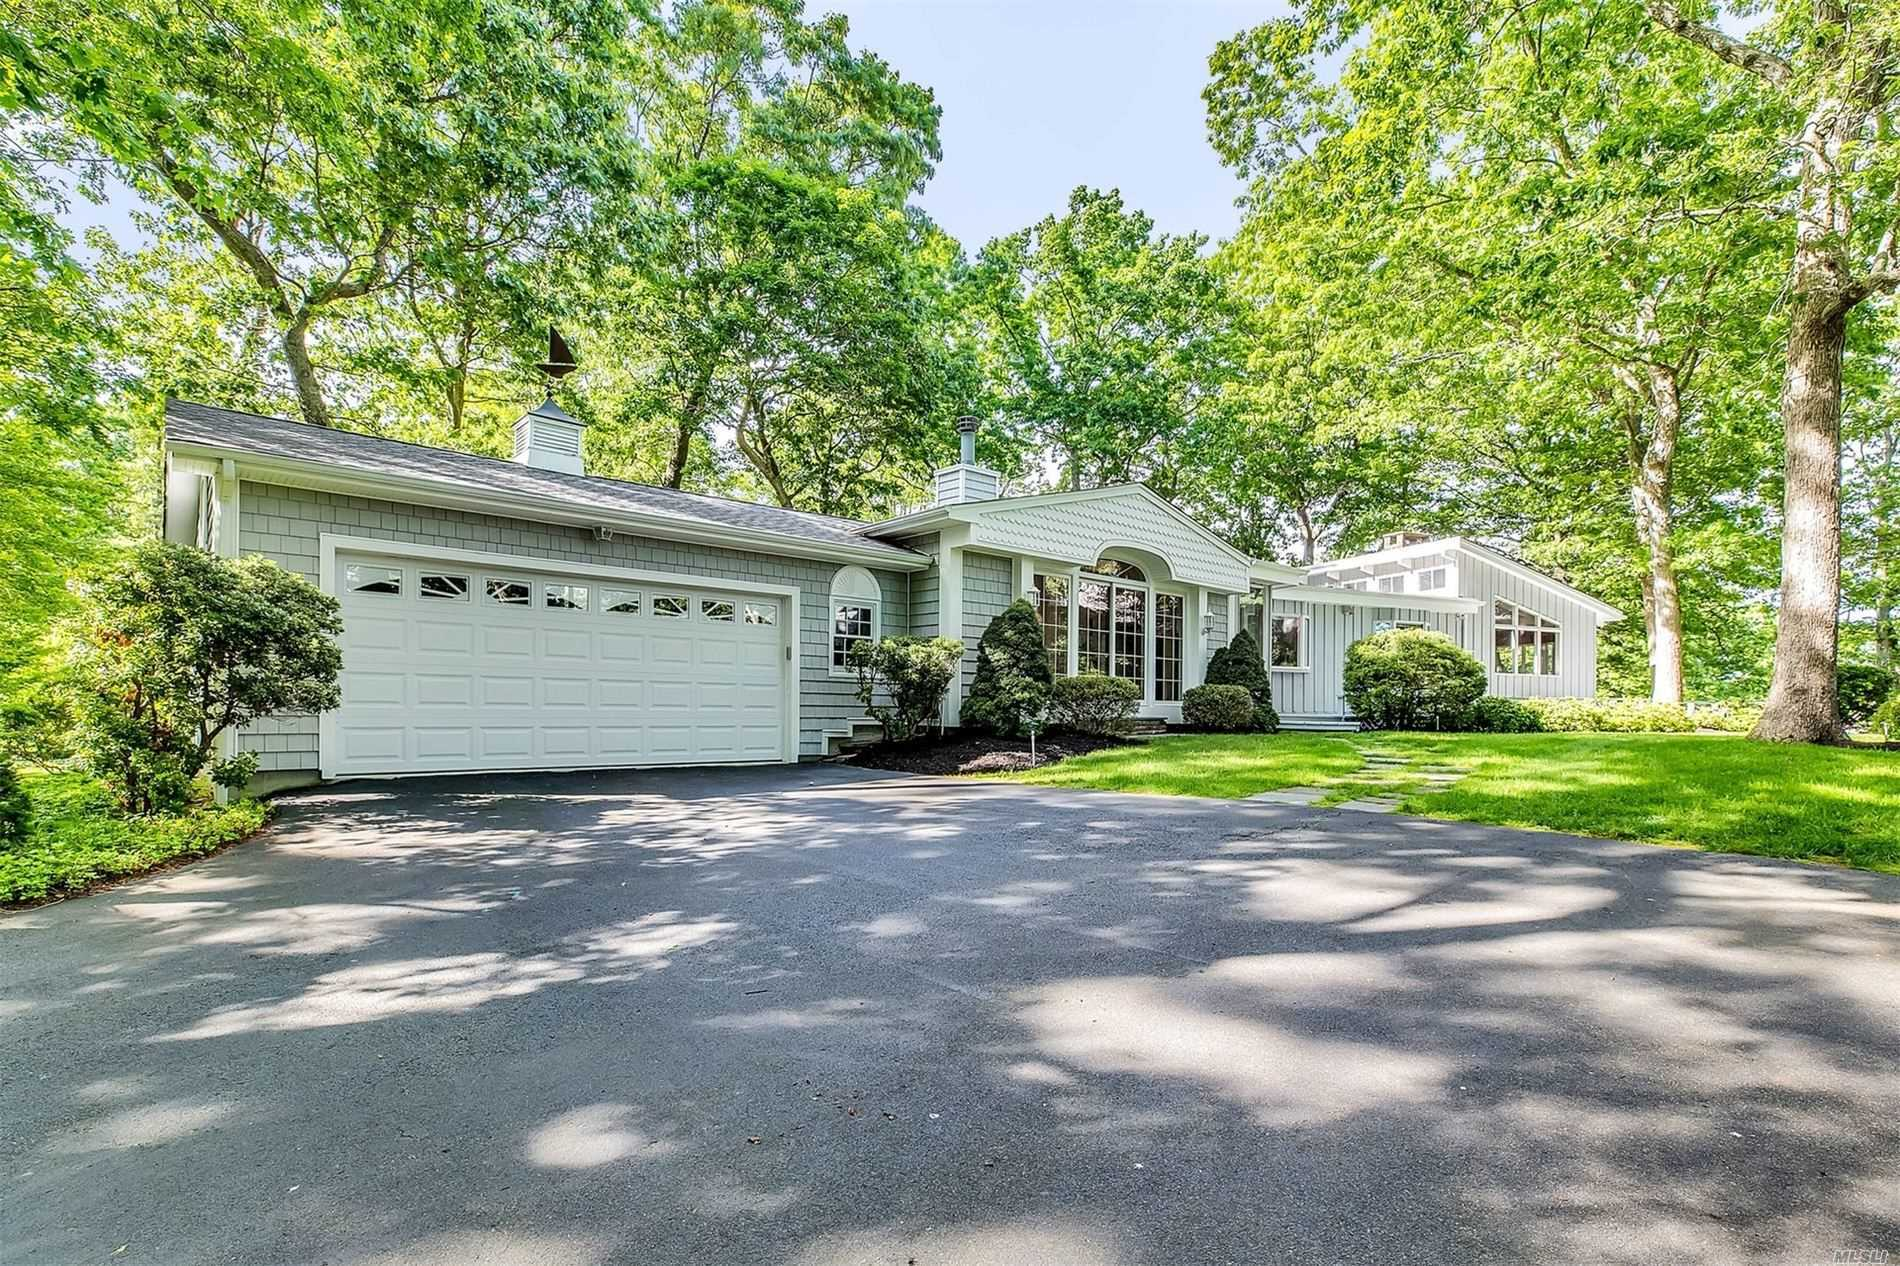 1525 Gull Pond Ln - Greenport, New York